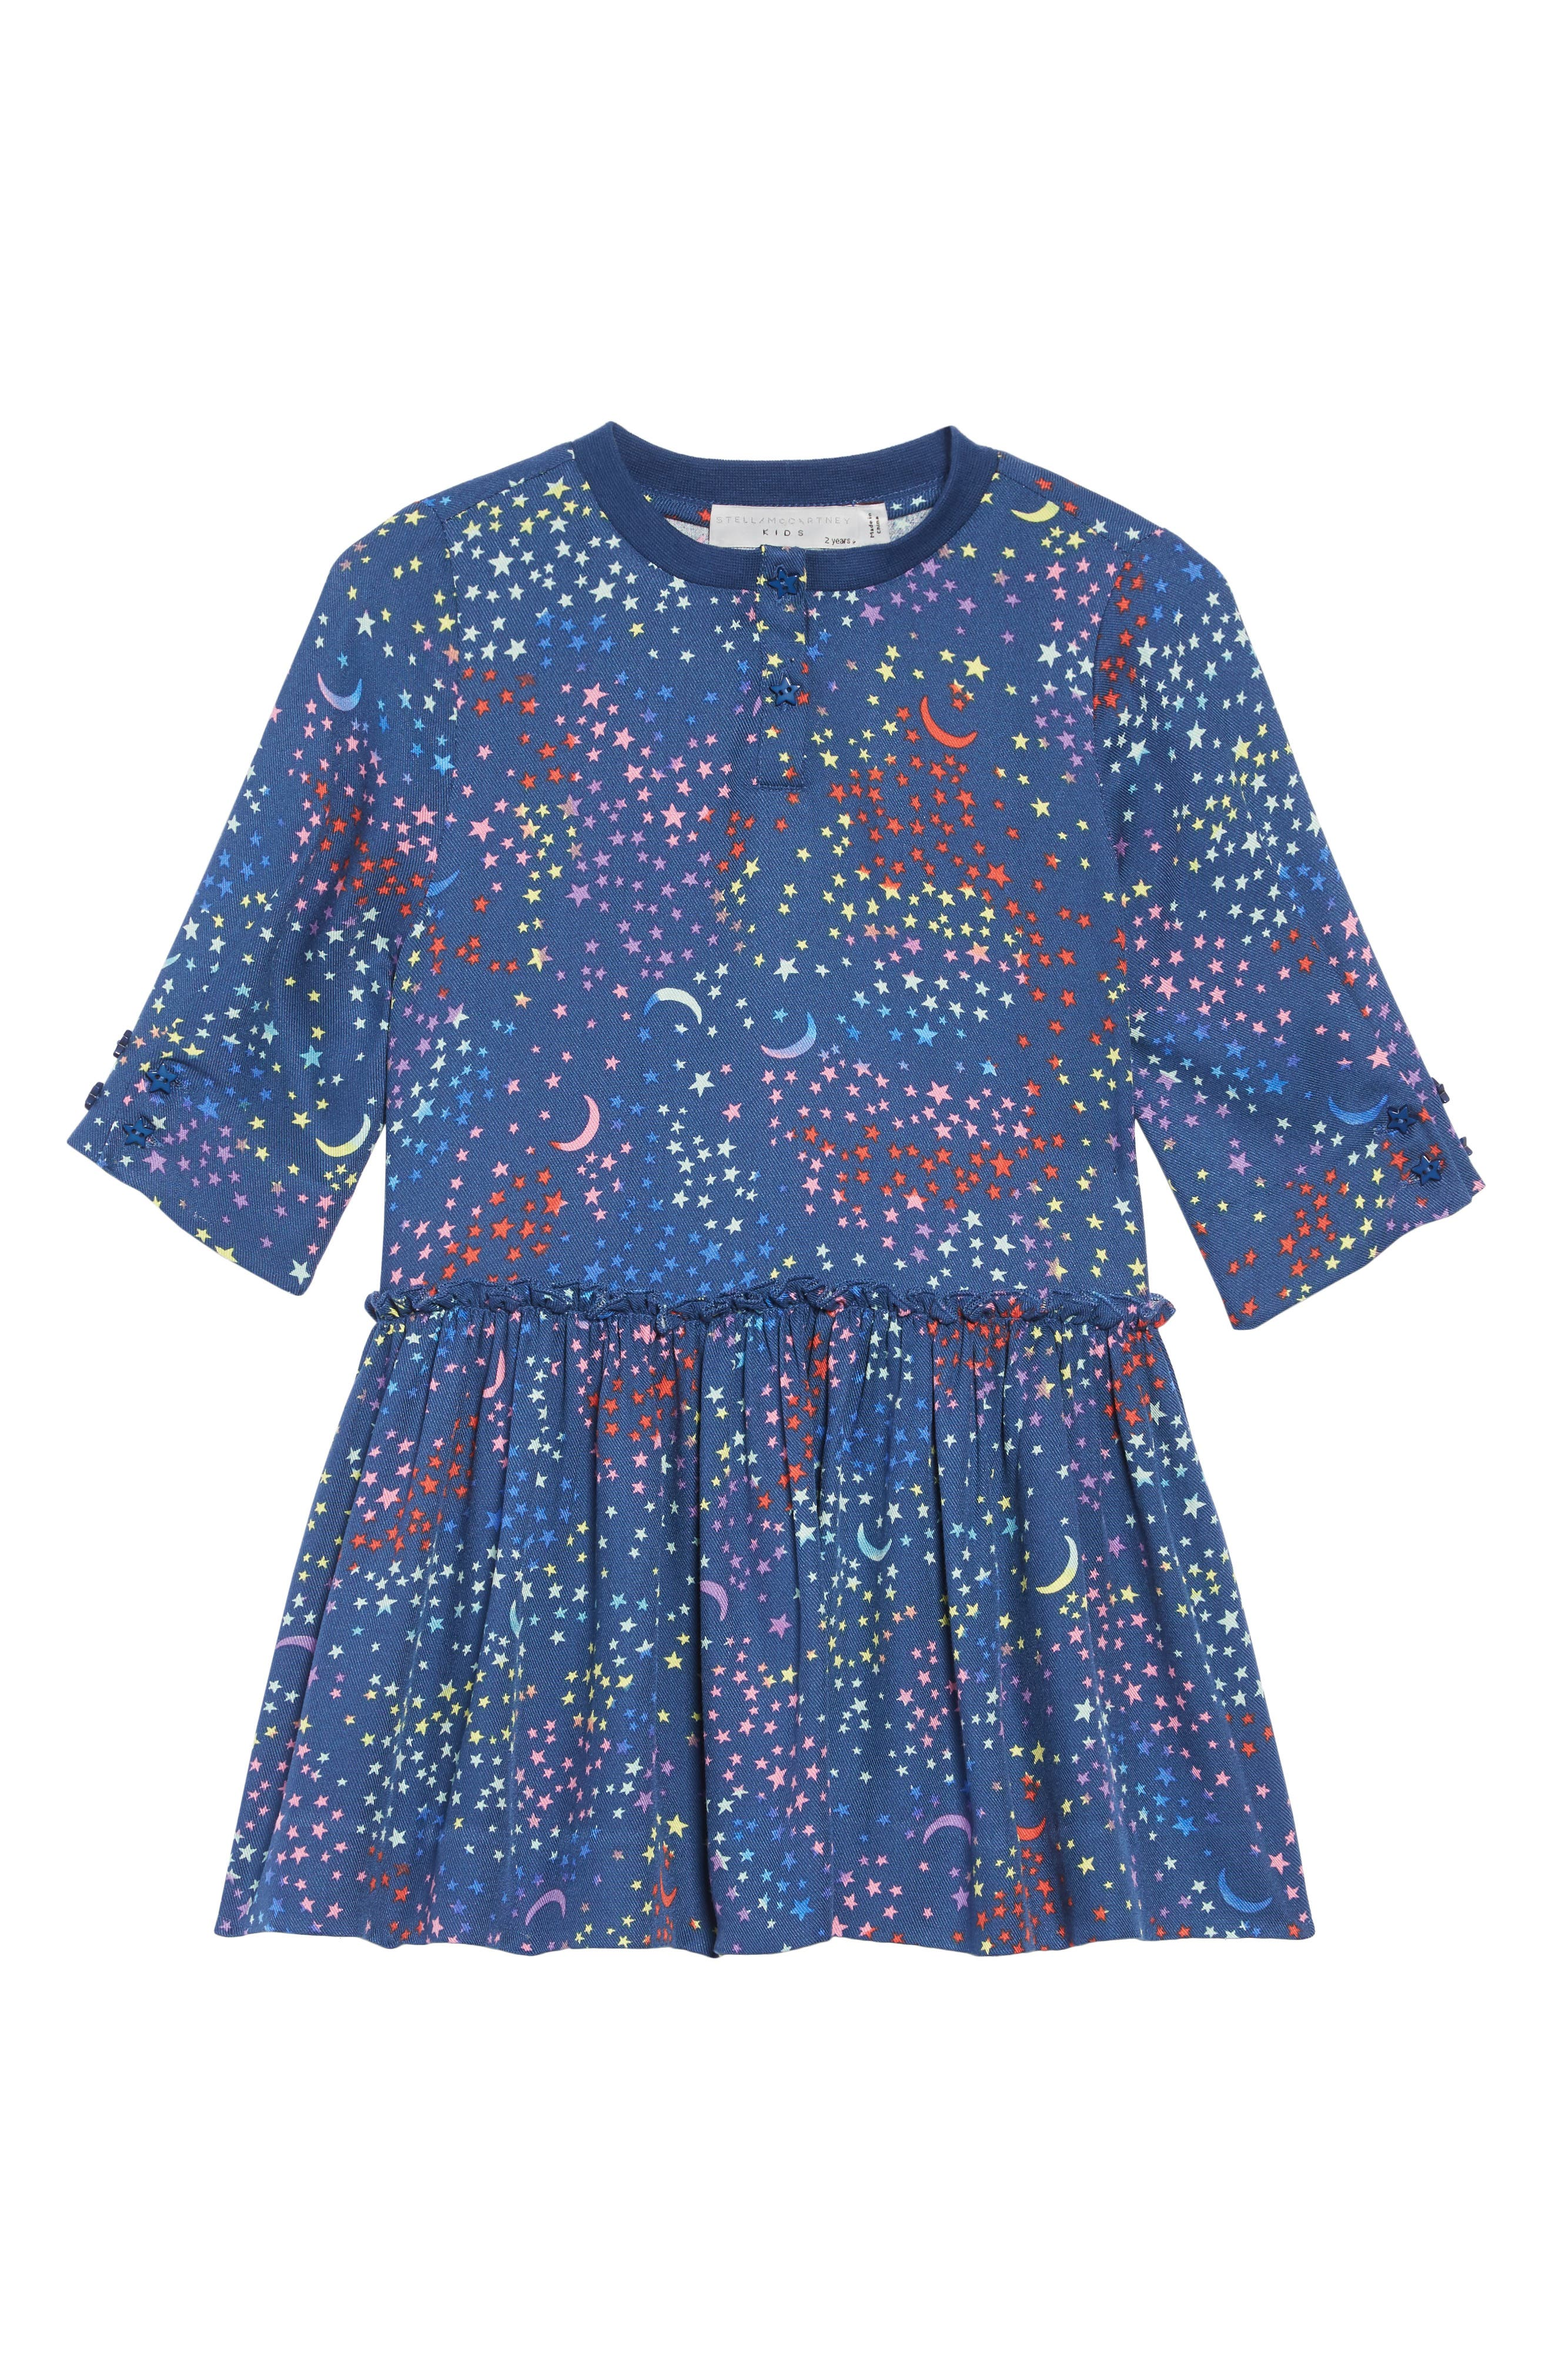 Stella McCartney Kiwi Star Print Dress,                         Main,                         color, BLUE